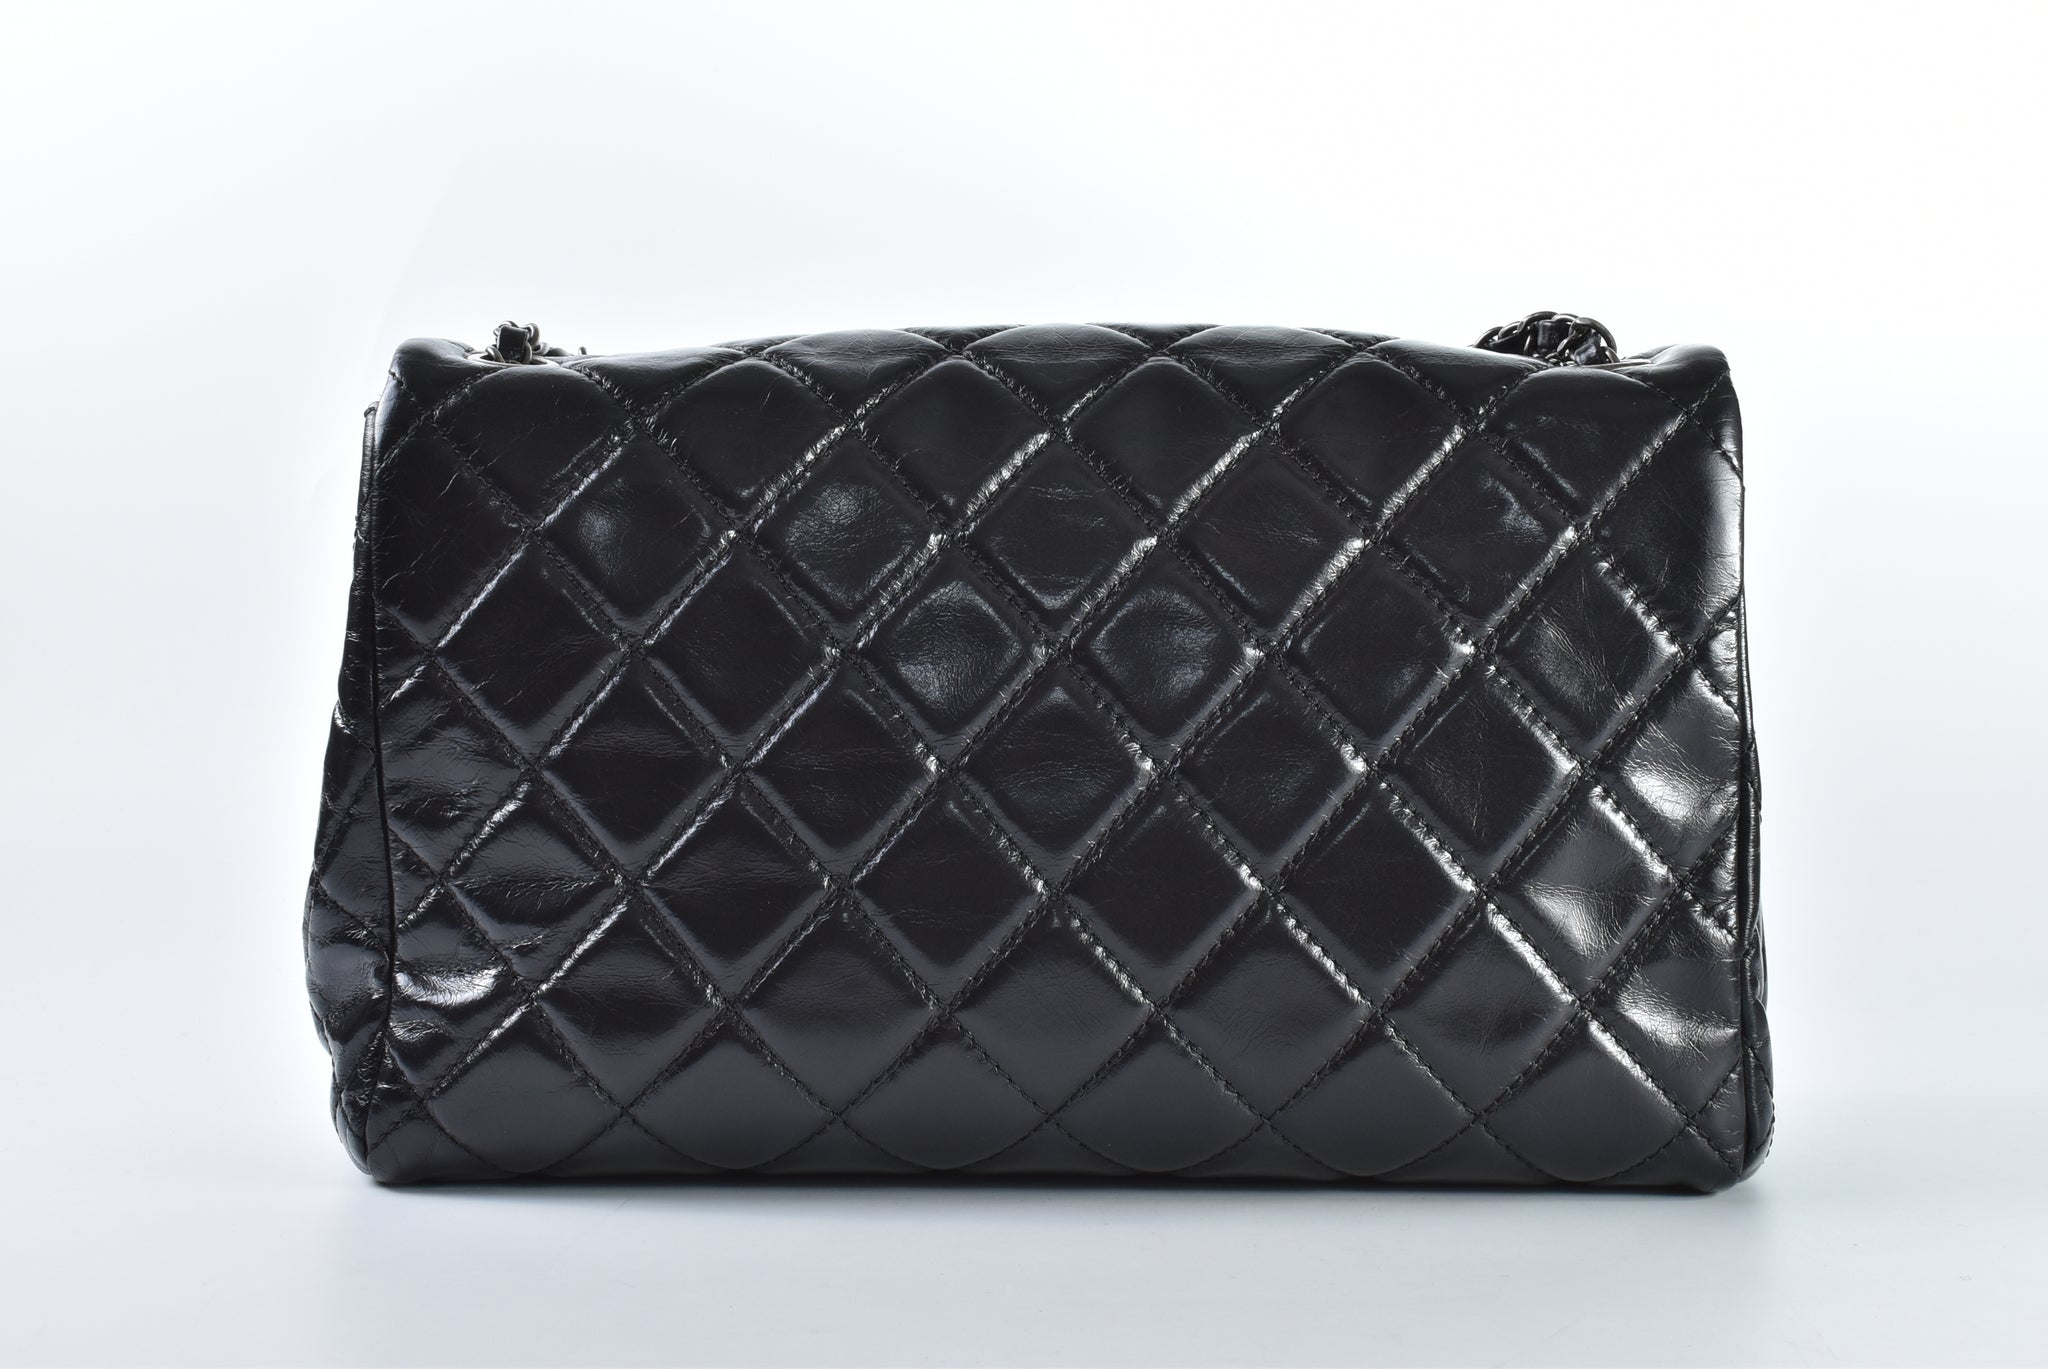 Chanel A90609 Black Aged Calf Flap RHW 20433335 - Glampot